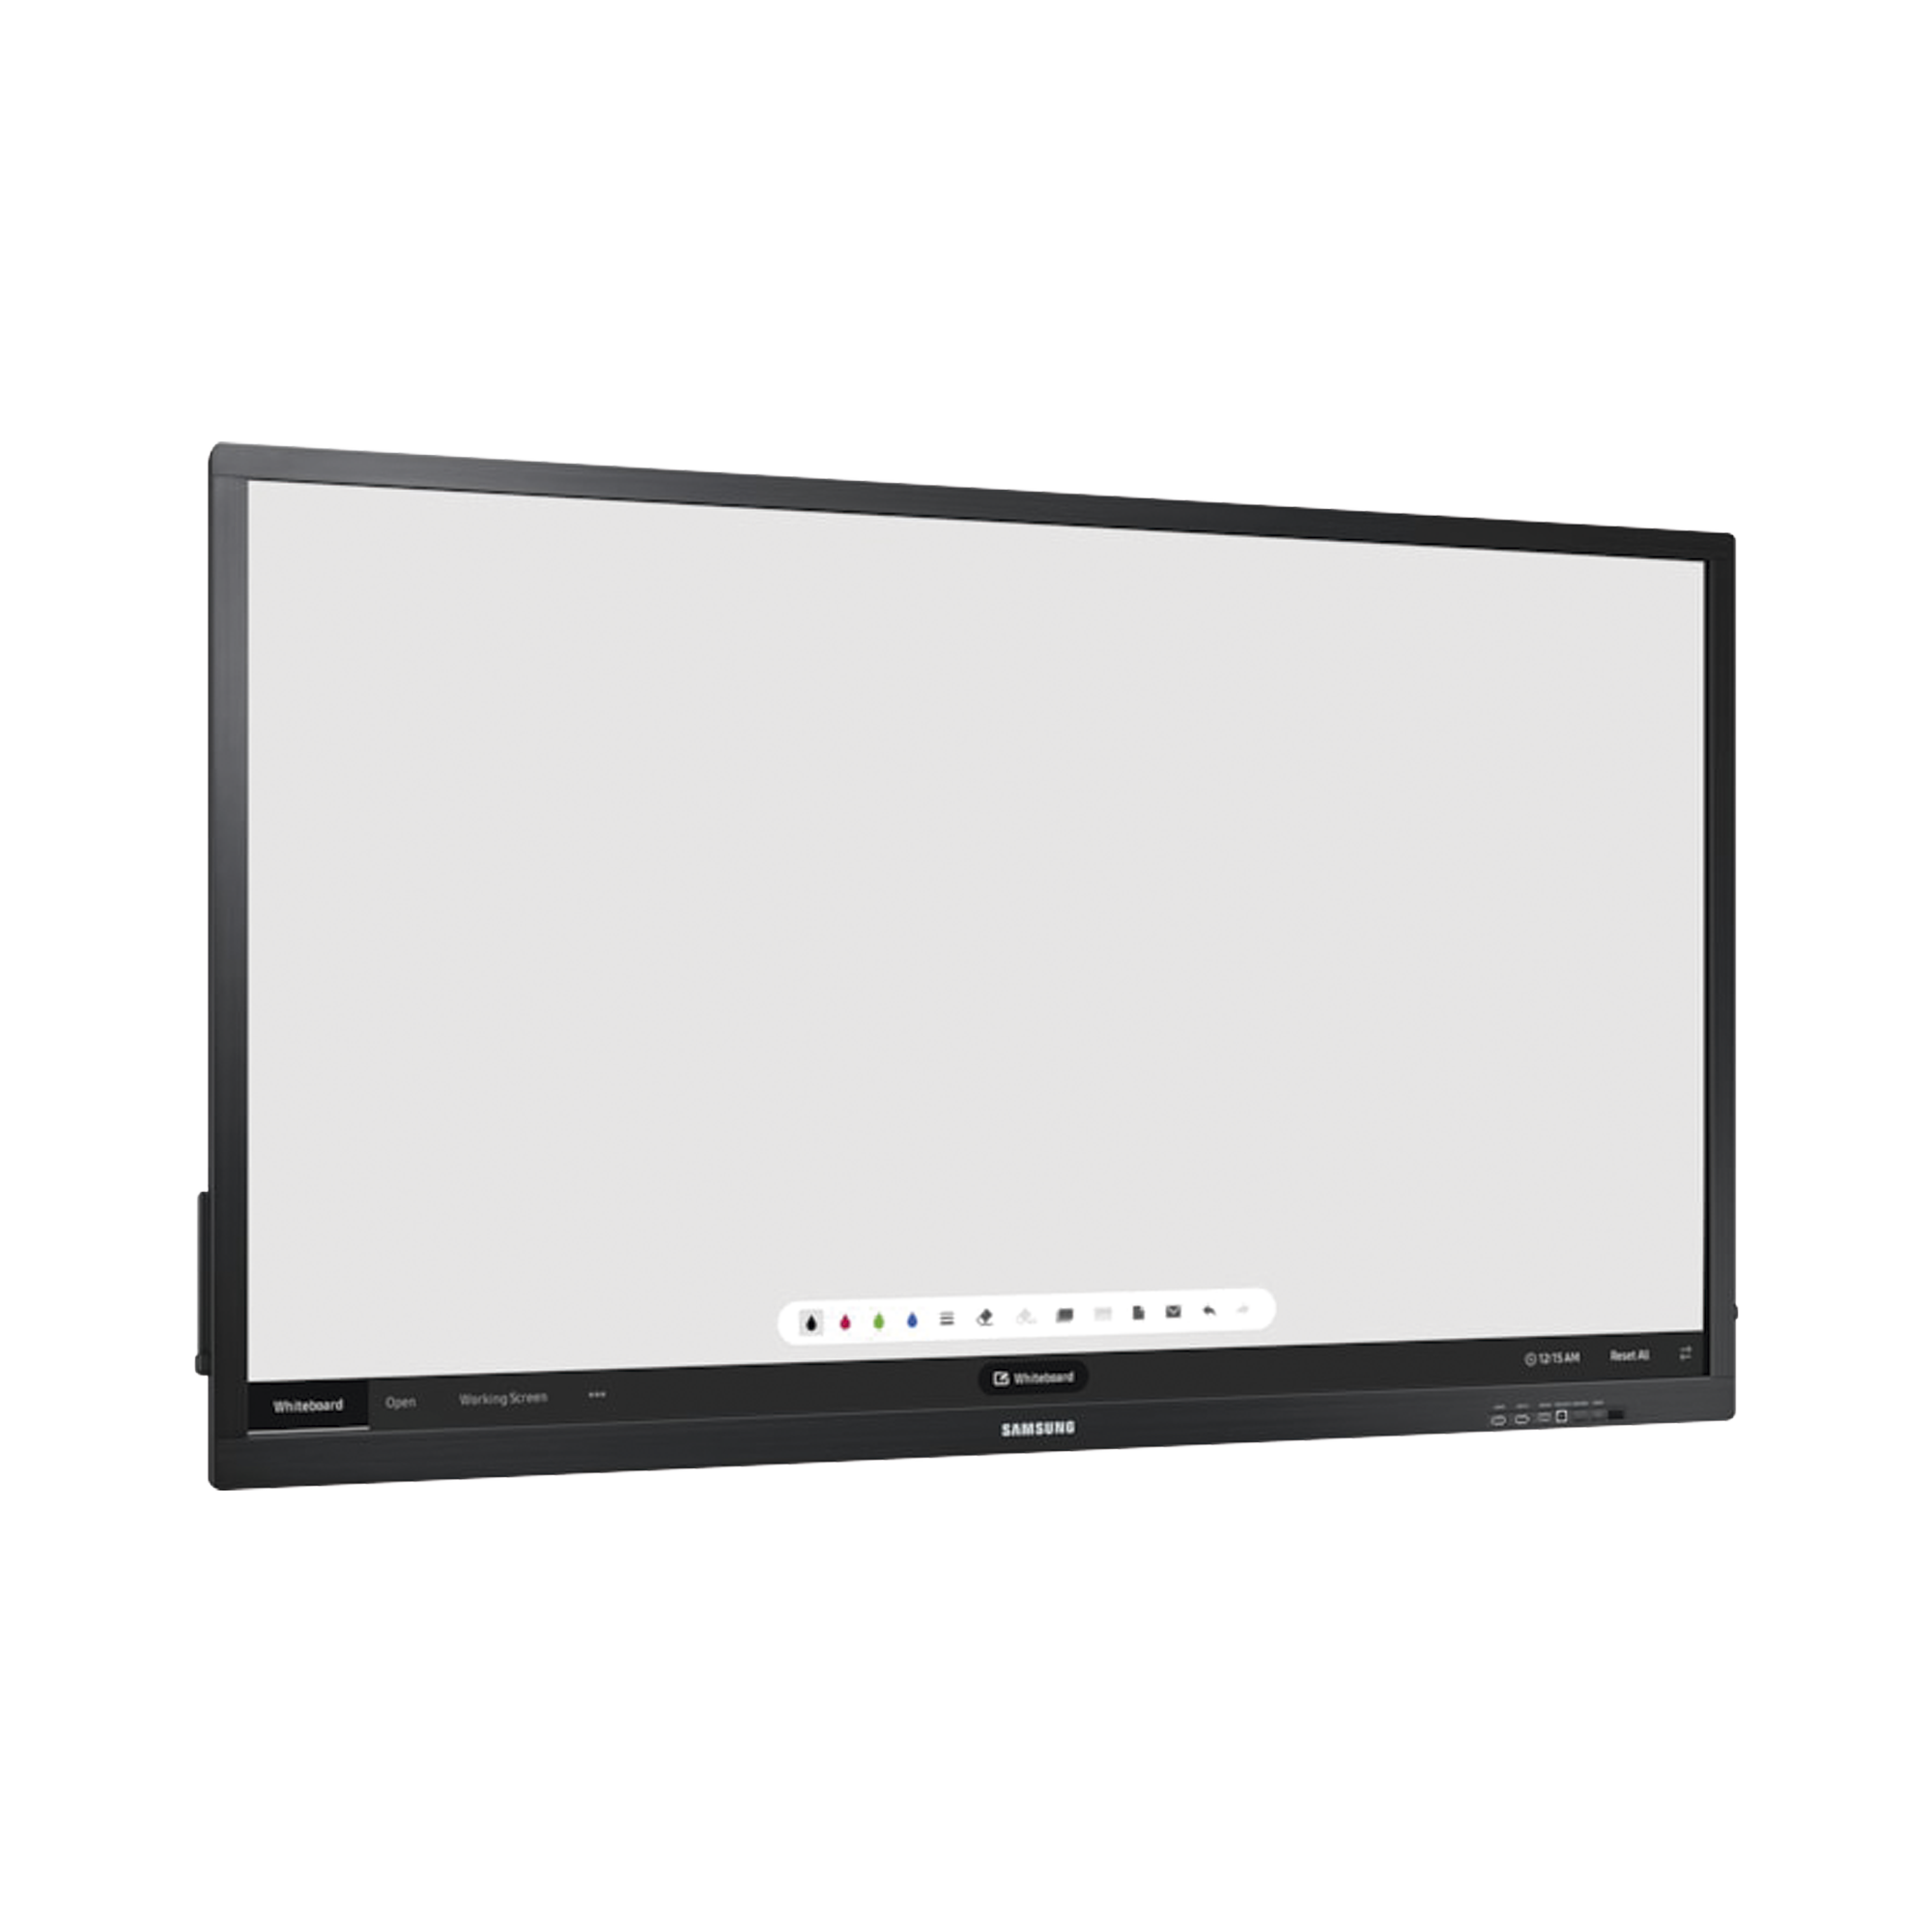 Display 4K WiFi Interactivo de 75 con Lápiz Táctil.  Puertos USB/LAN/RS232/HDMI/Salida Touch. Compatible VESA